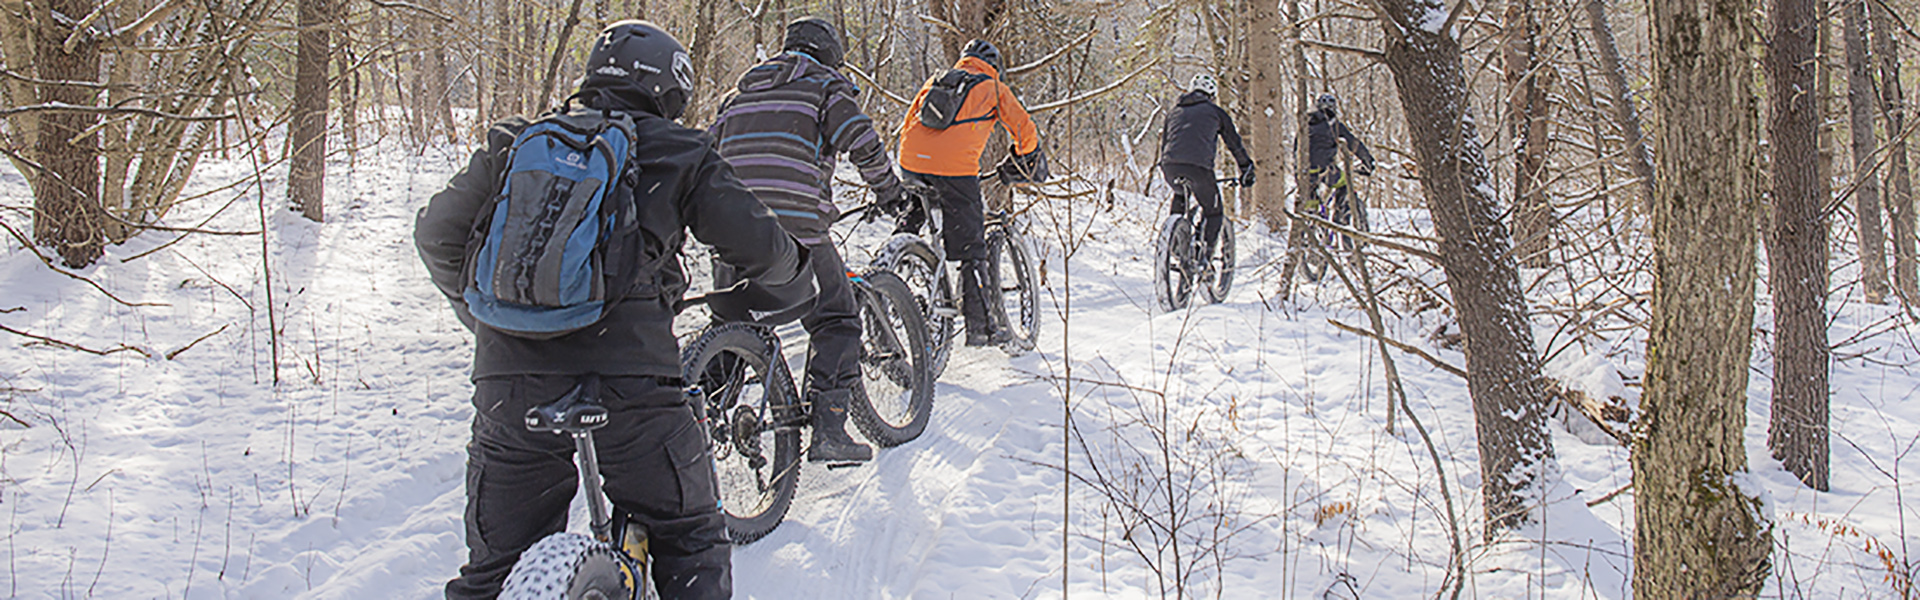 Fat Biking Guided Adventure